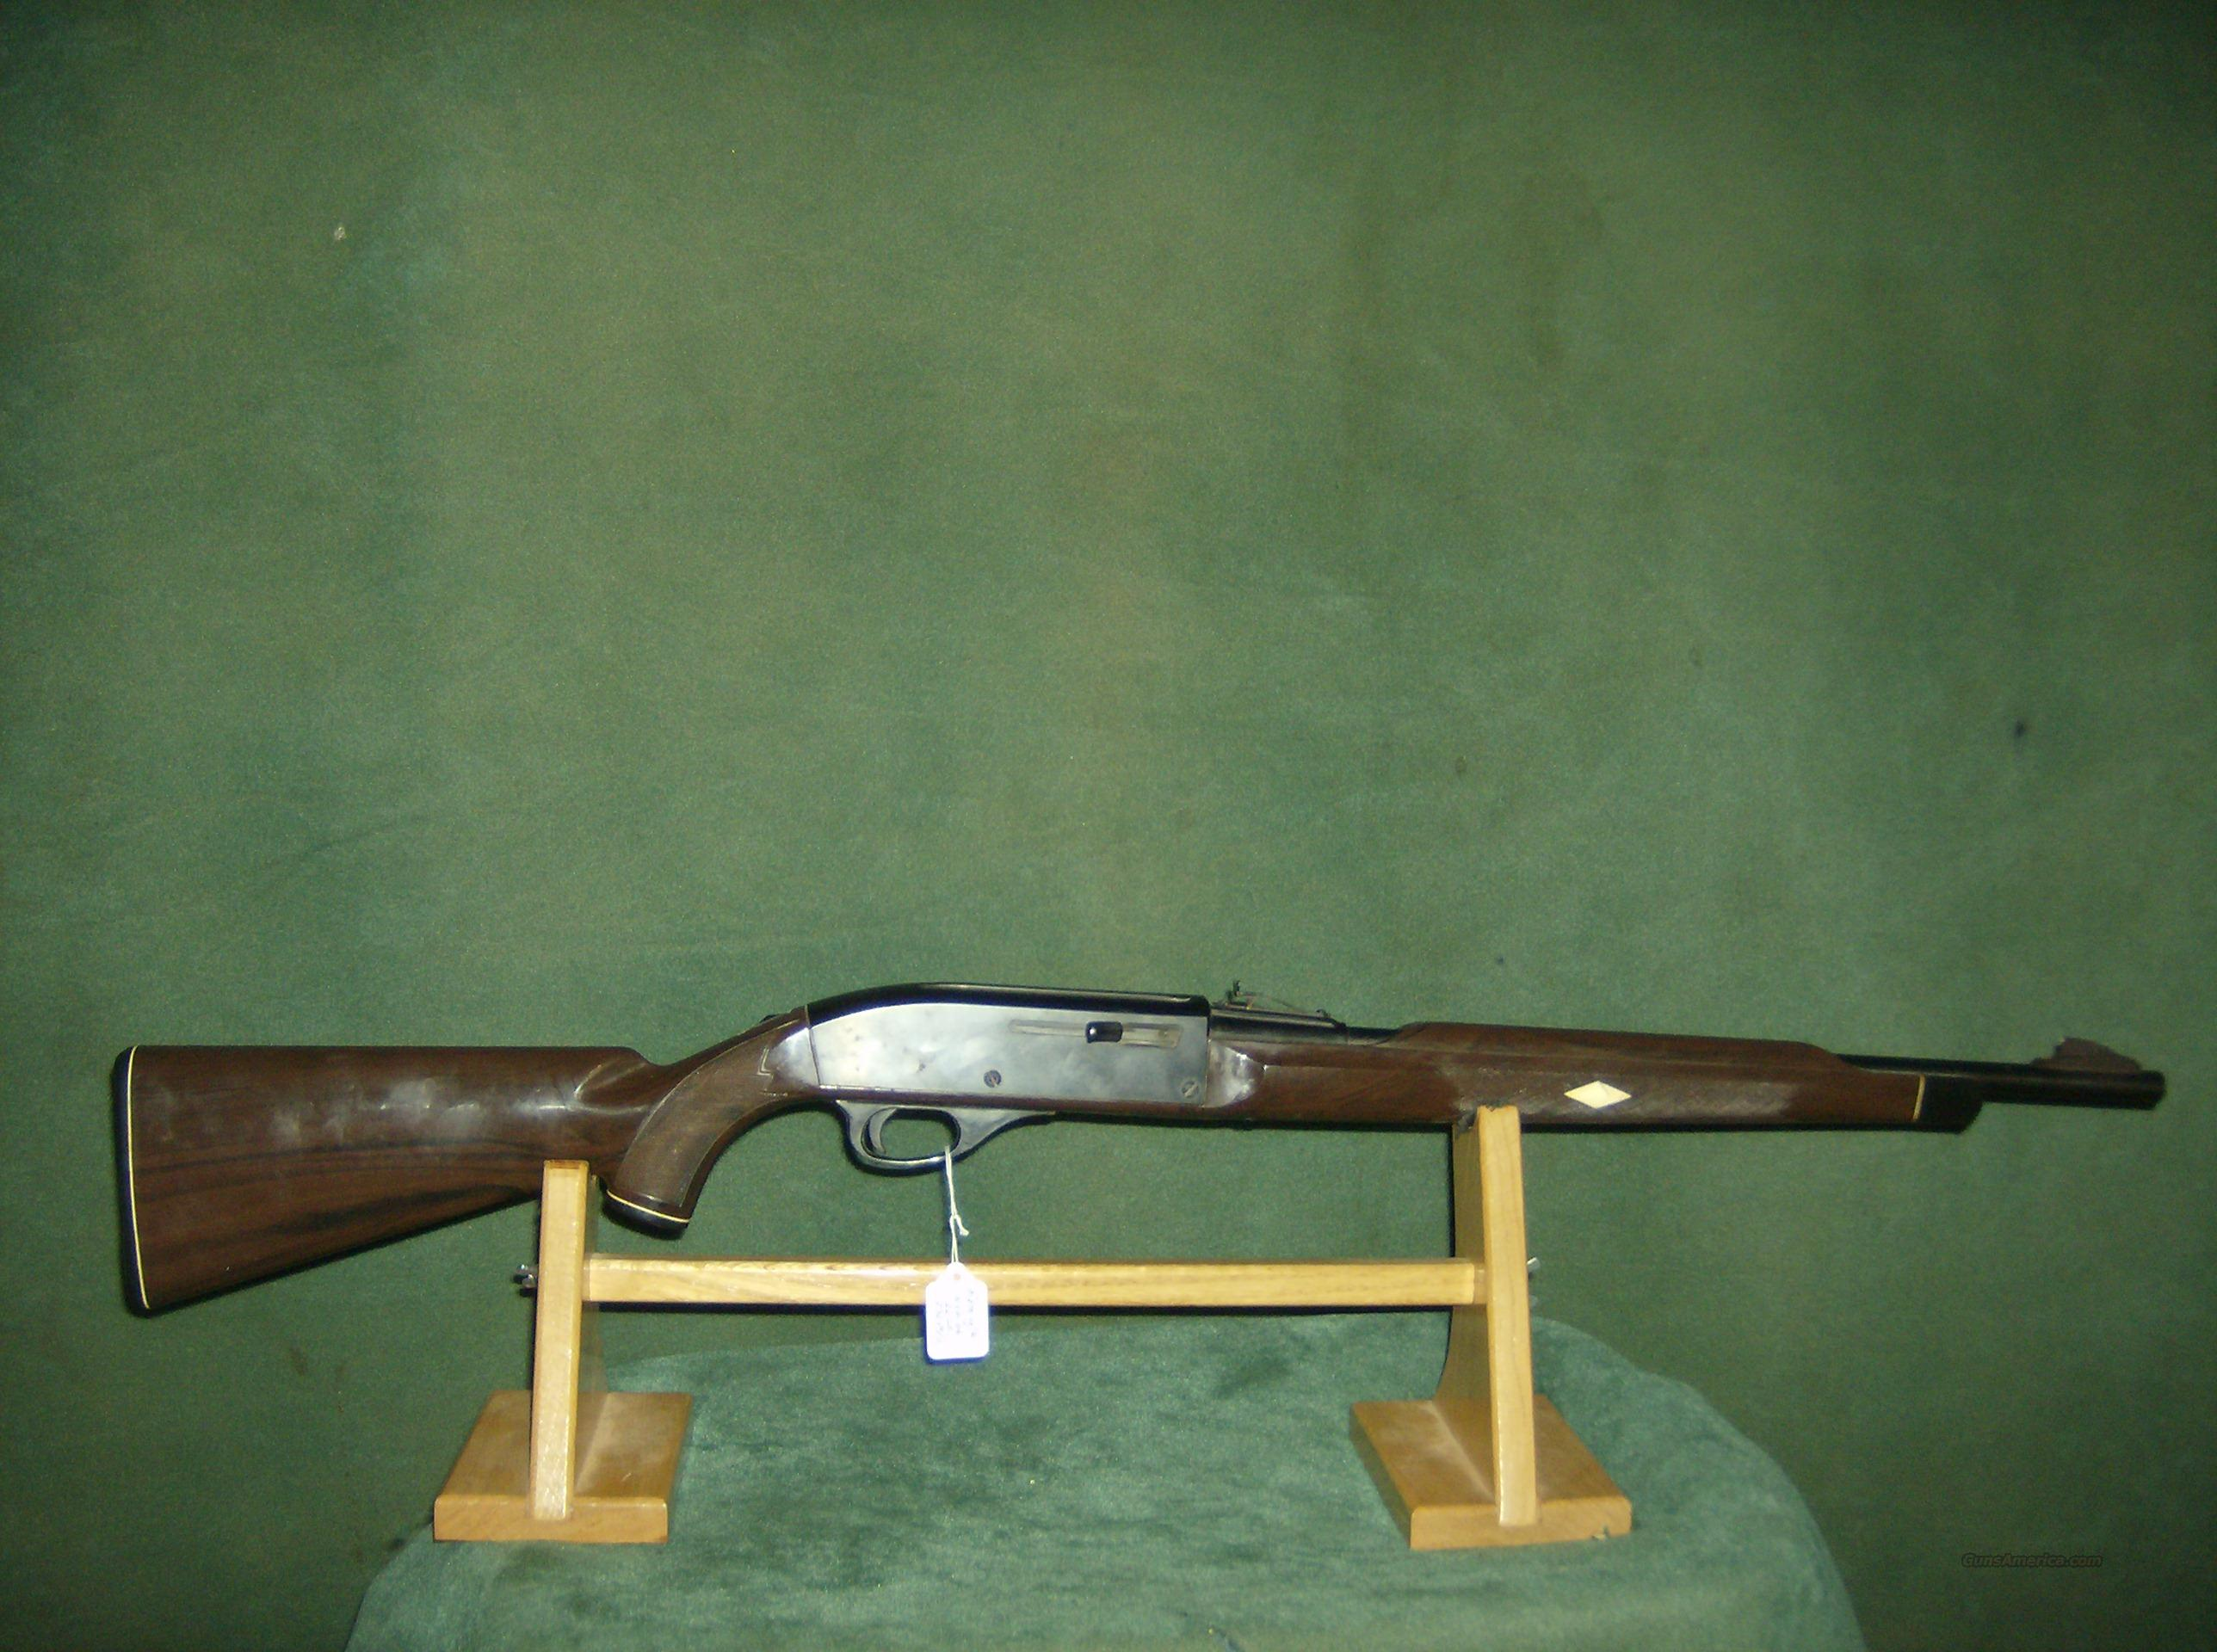 REMINGTON NYLON 66 TUBE FEED  Guns > Rifles > Remington Rifles - Modern > .22 Rimfire Models